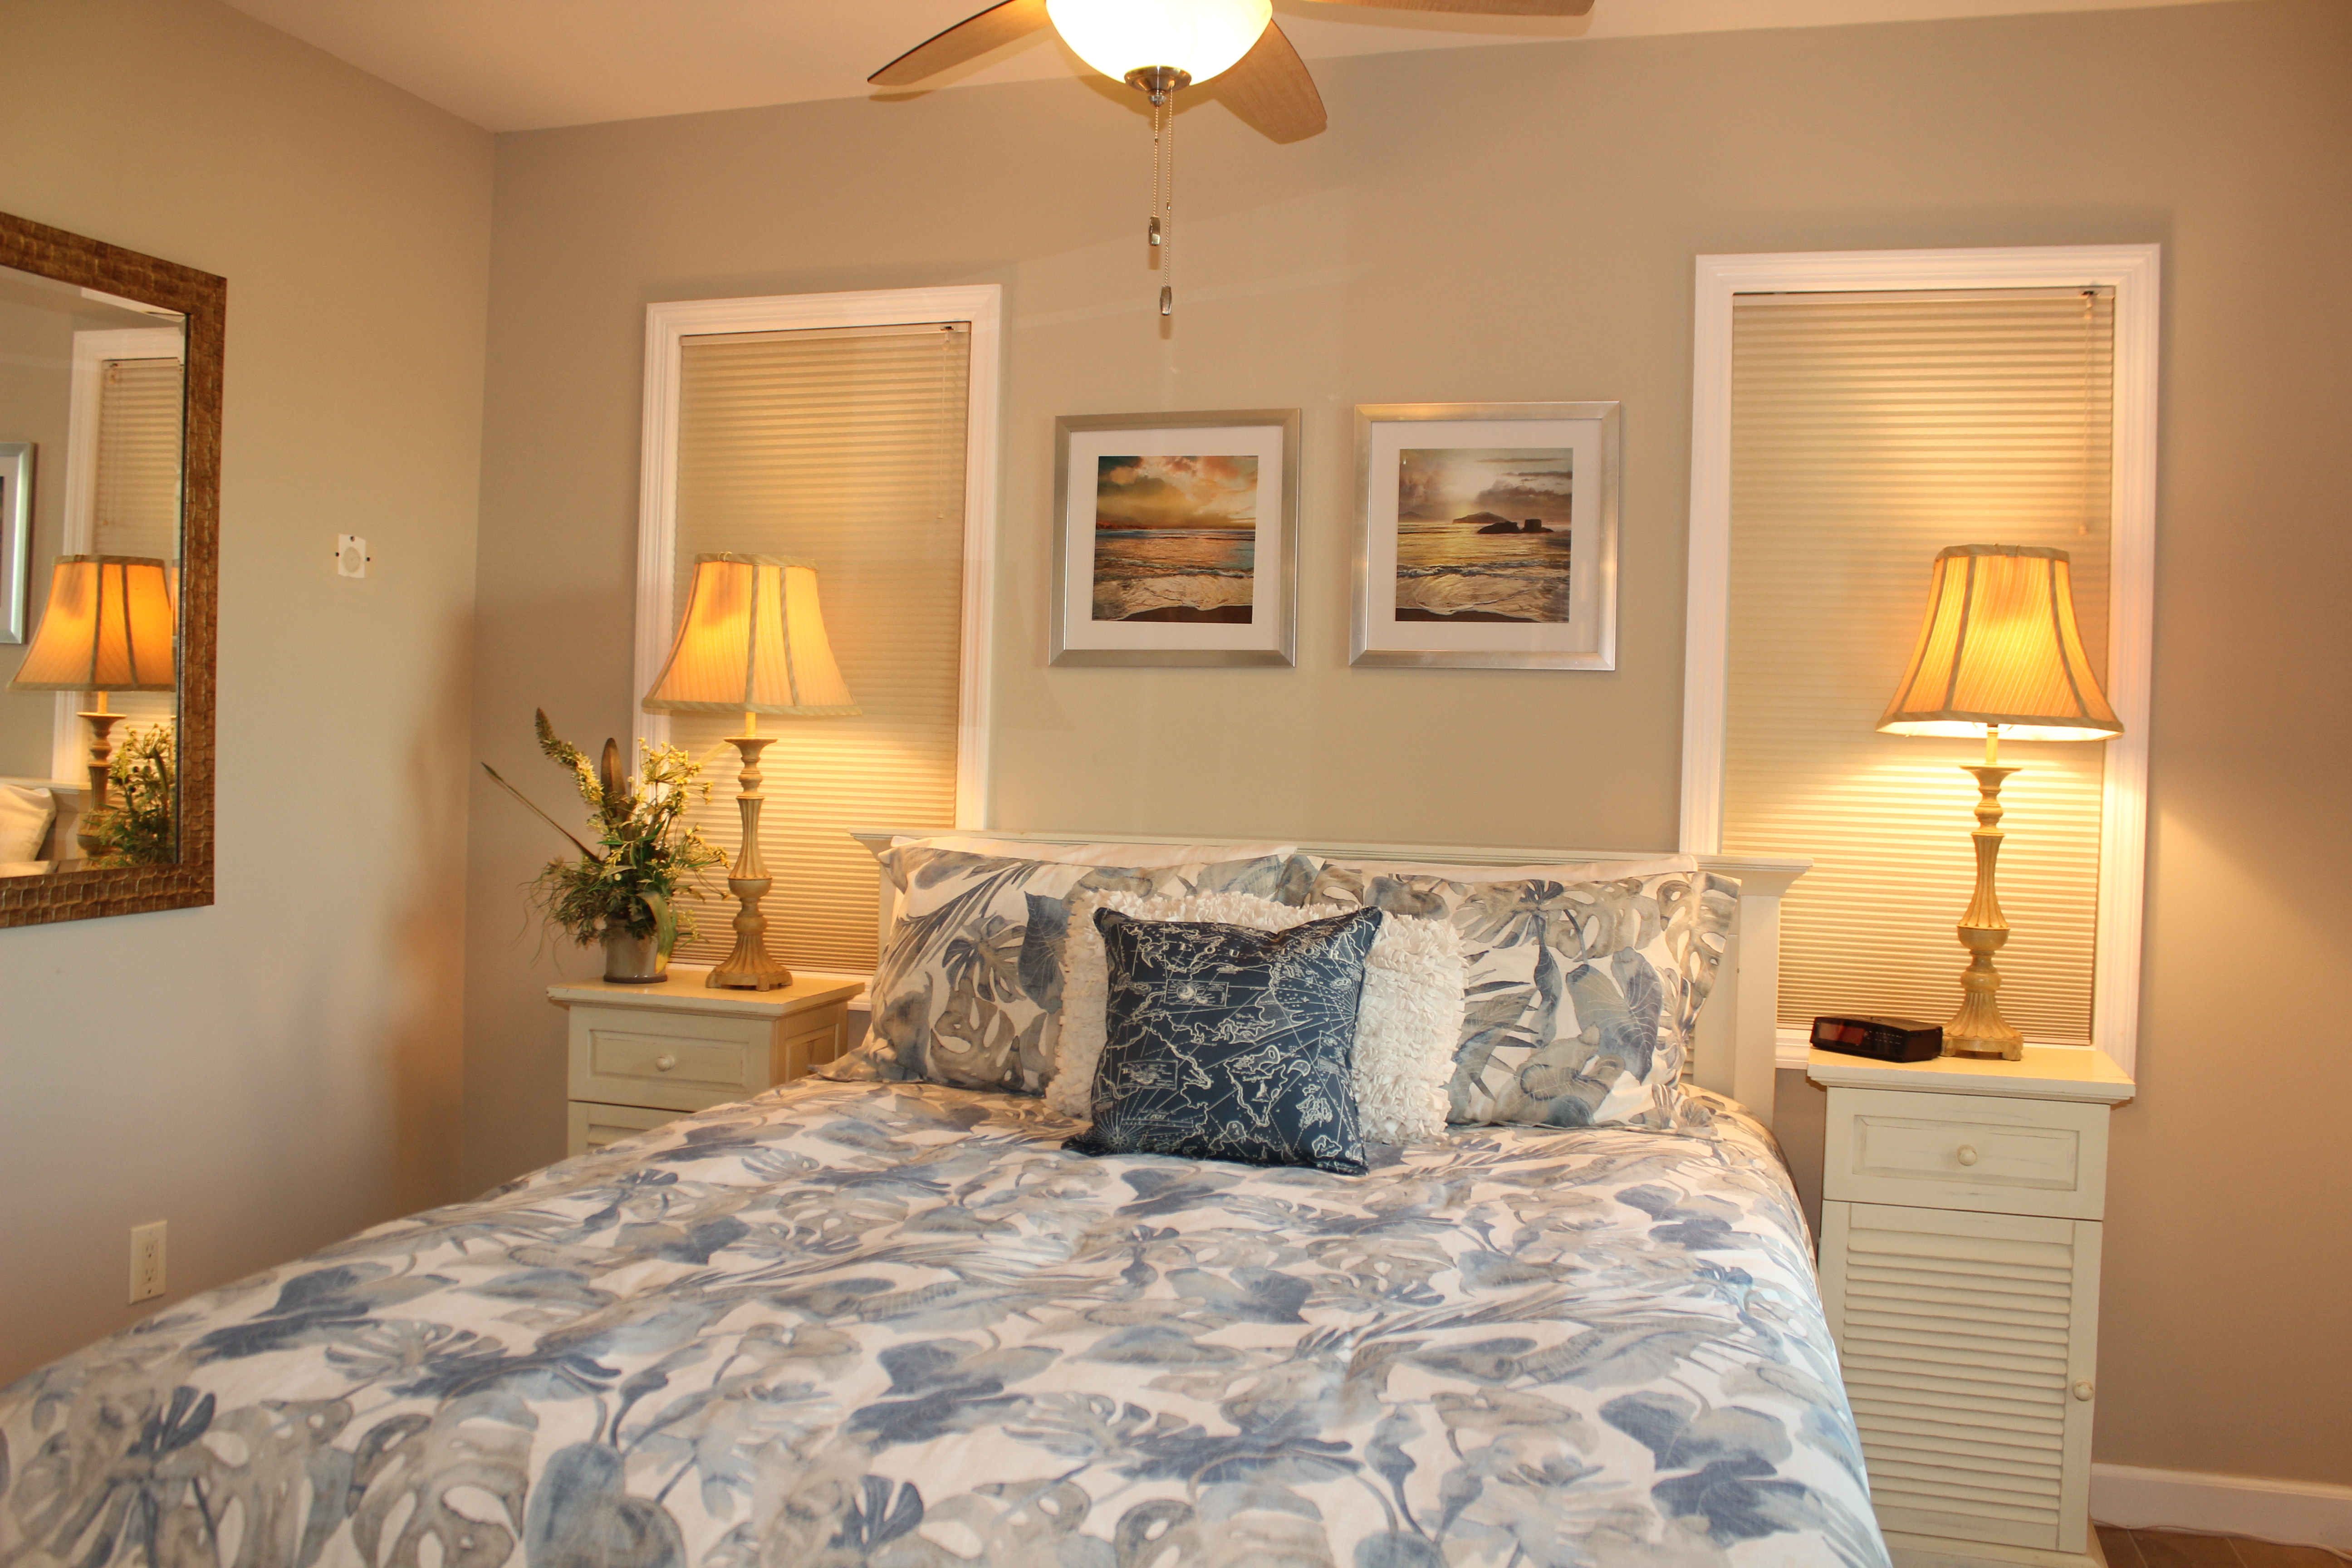 Second bedroom viewed from adjoining vanity area. Closed blinds (night time option) at internal windows.